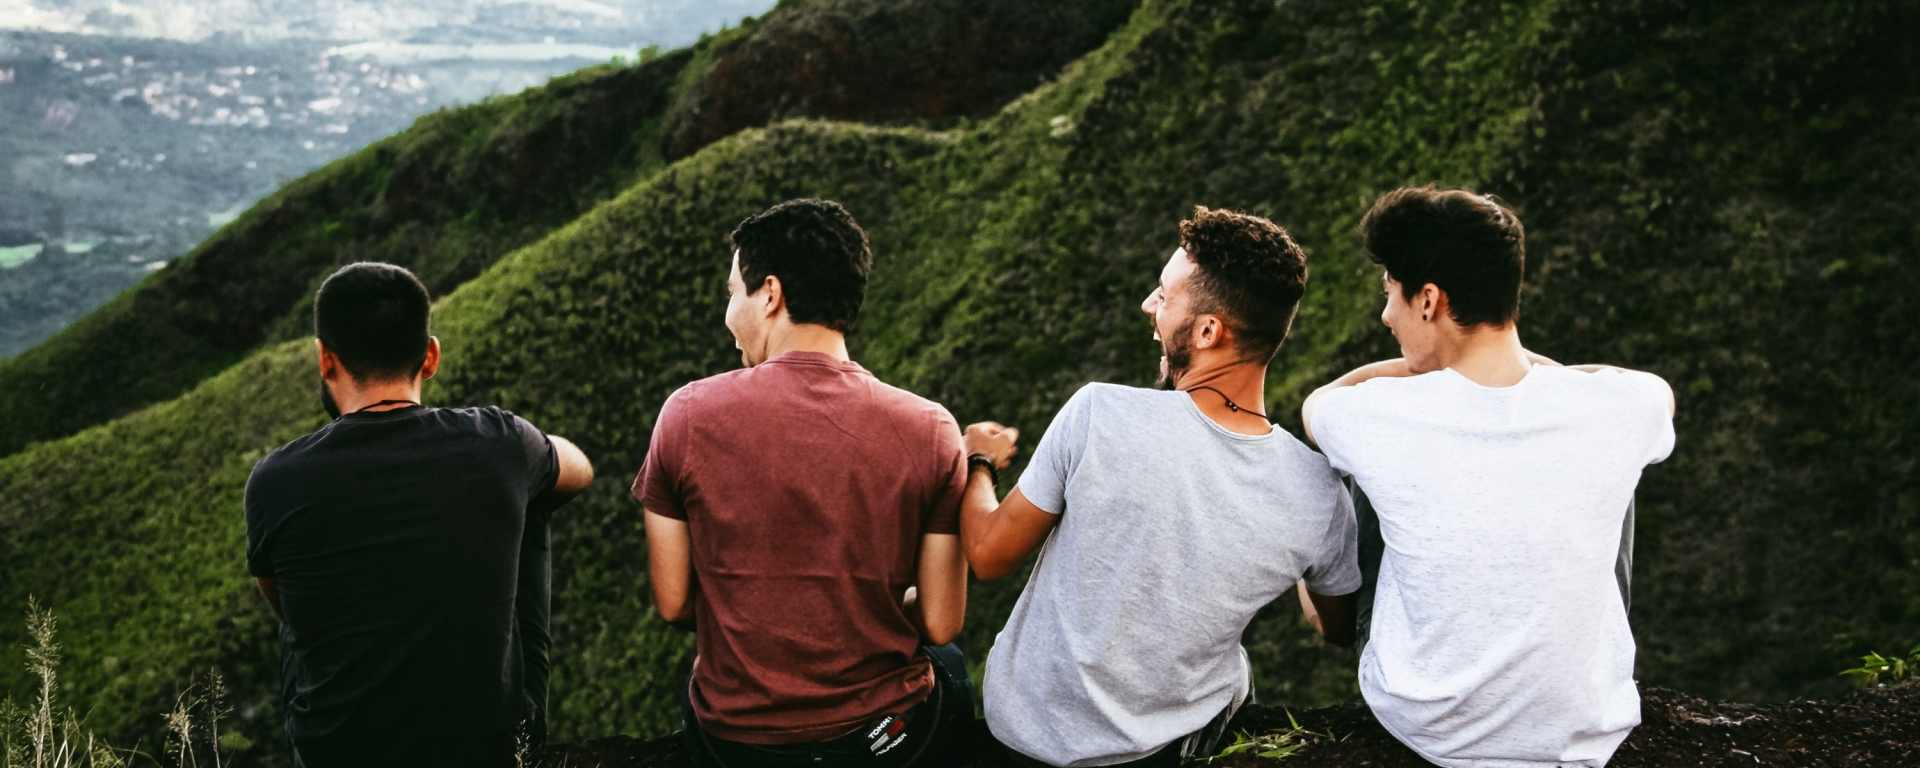 4 Secrets to Developing Stronger Friendships